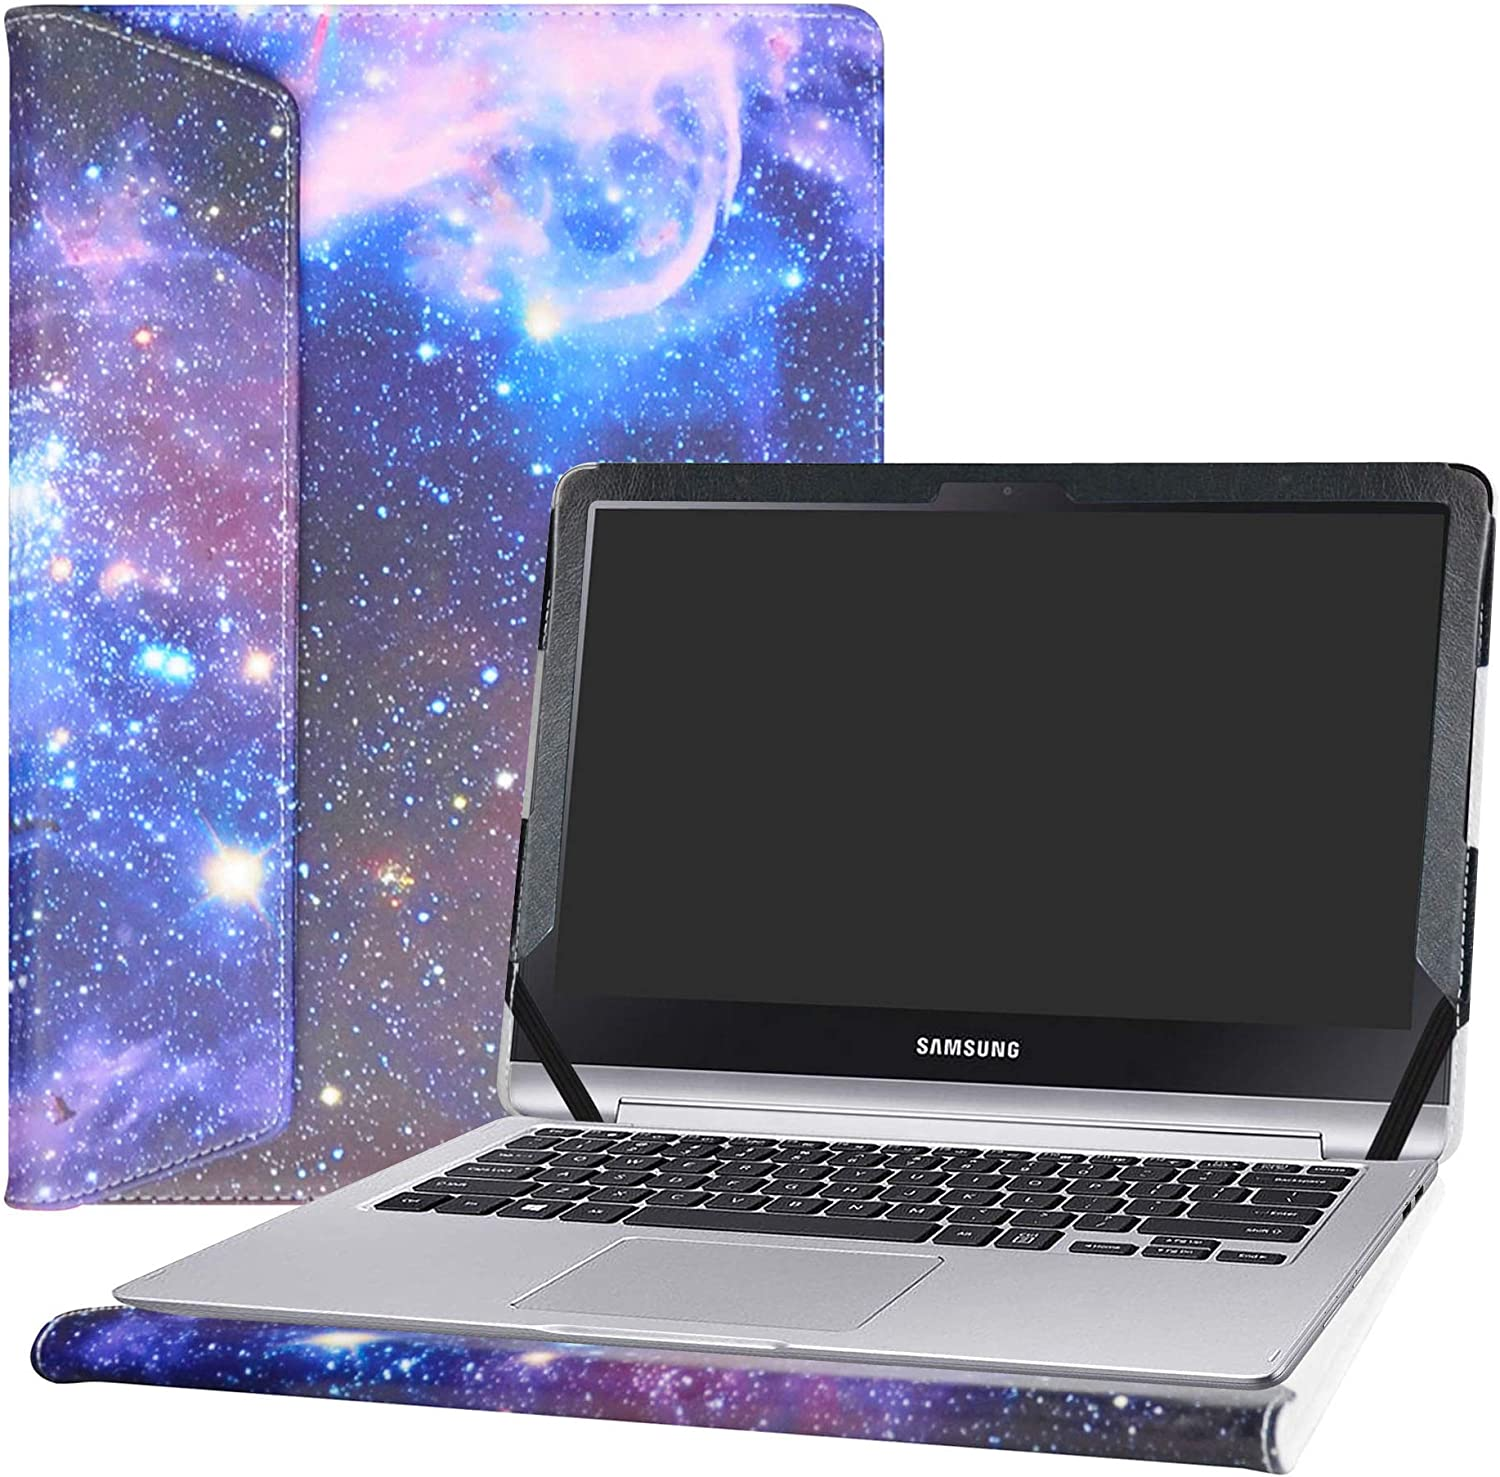 """Alapmk Protective Case Cover for 13.3"""" Samsung Notebook 7 Spin 13 NP740U3L NP740U3M Series Laptop(Warning:Not Fit Samsung Notebook 7 Spin 13 NP730QAA 2018),Galaxy"""